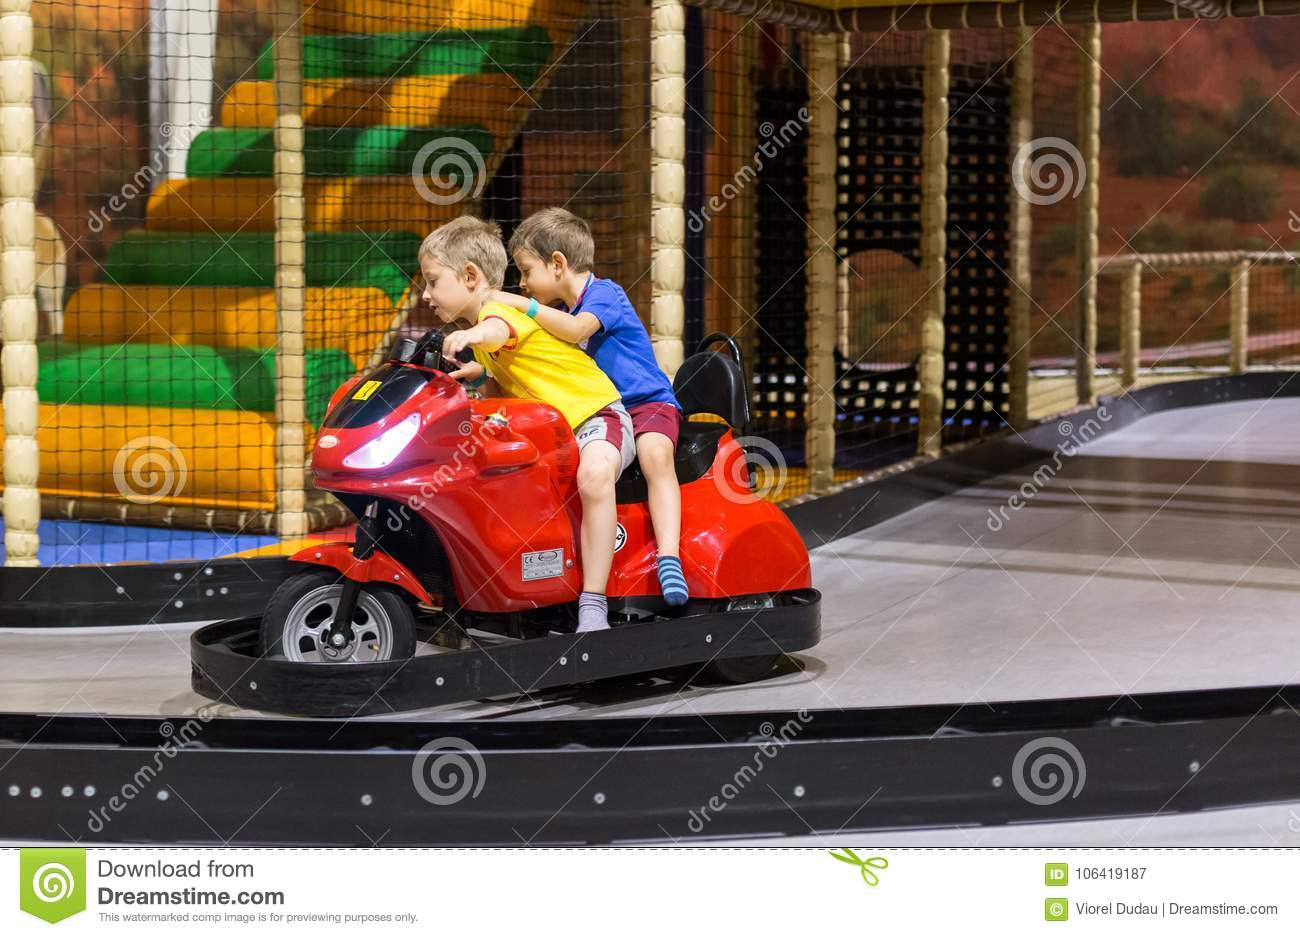 Children on amusement park ride